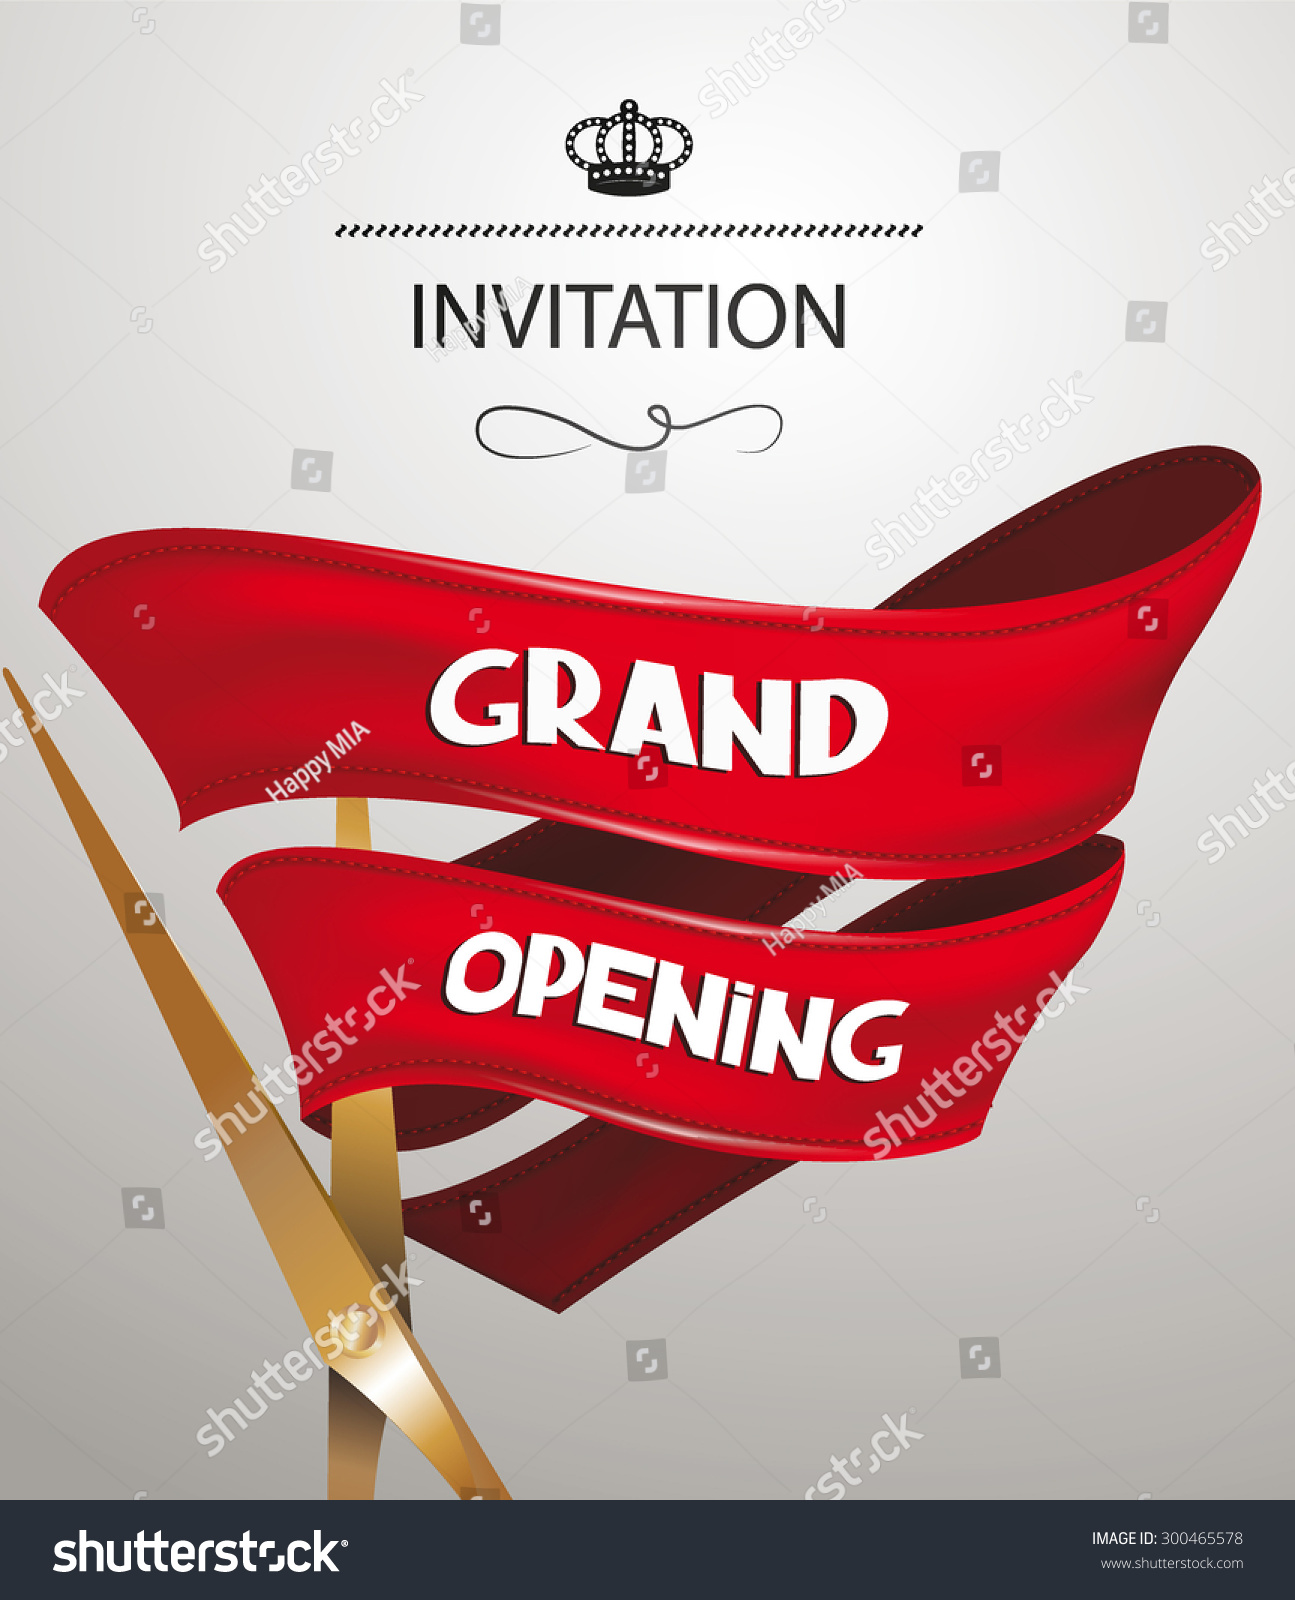 Grand Opening Invitation Card Scissors Red Vector 300465578 – Grand Opening Invitation Cards